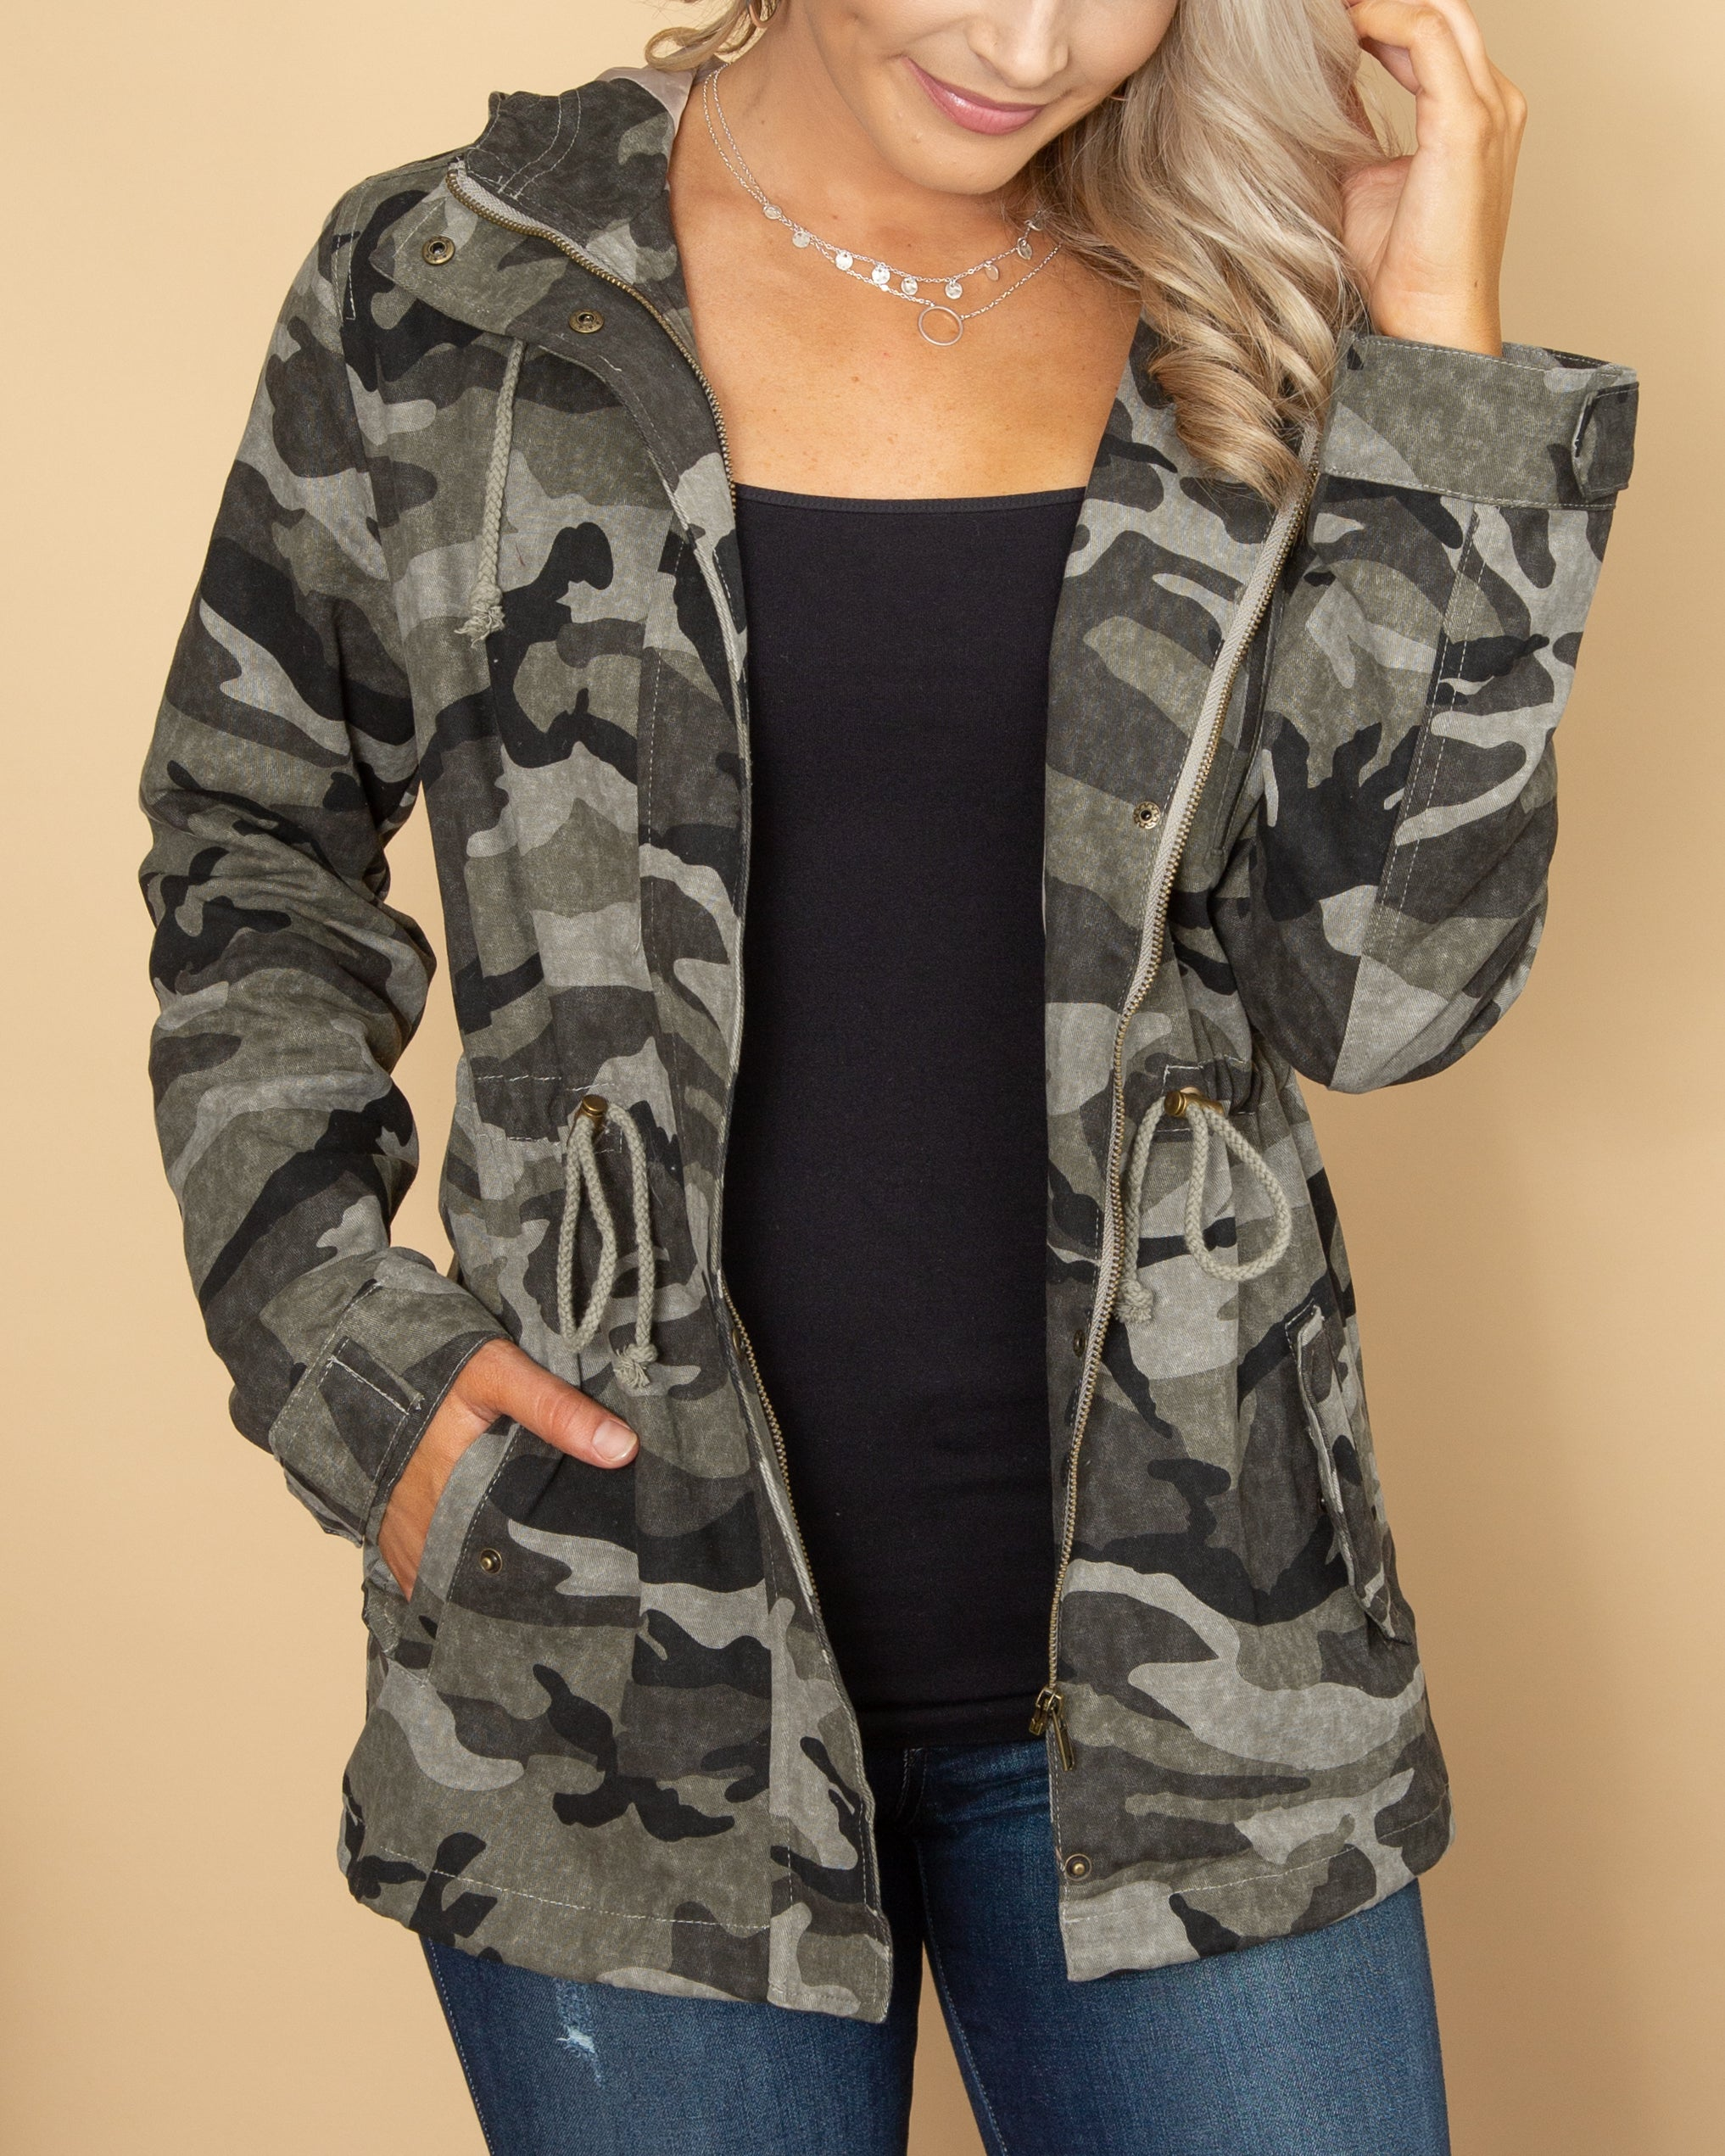 Back To My Roots Camo Jacket - Grey